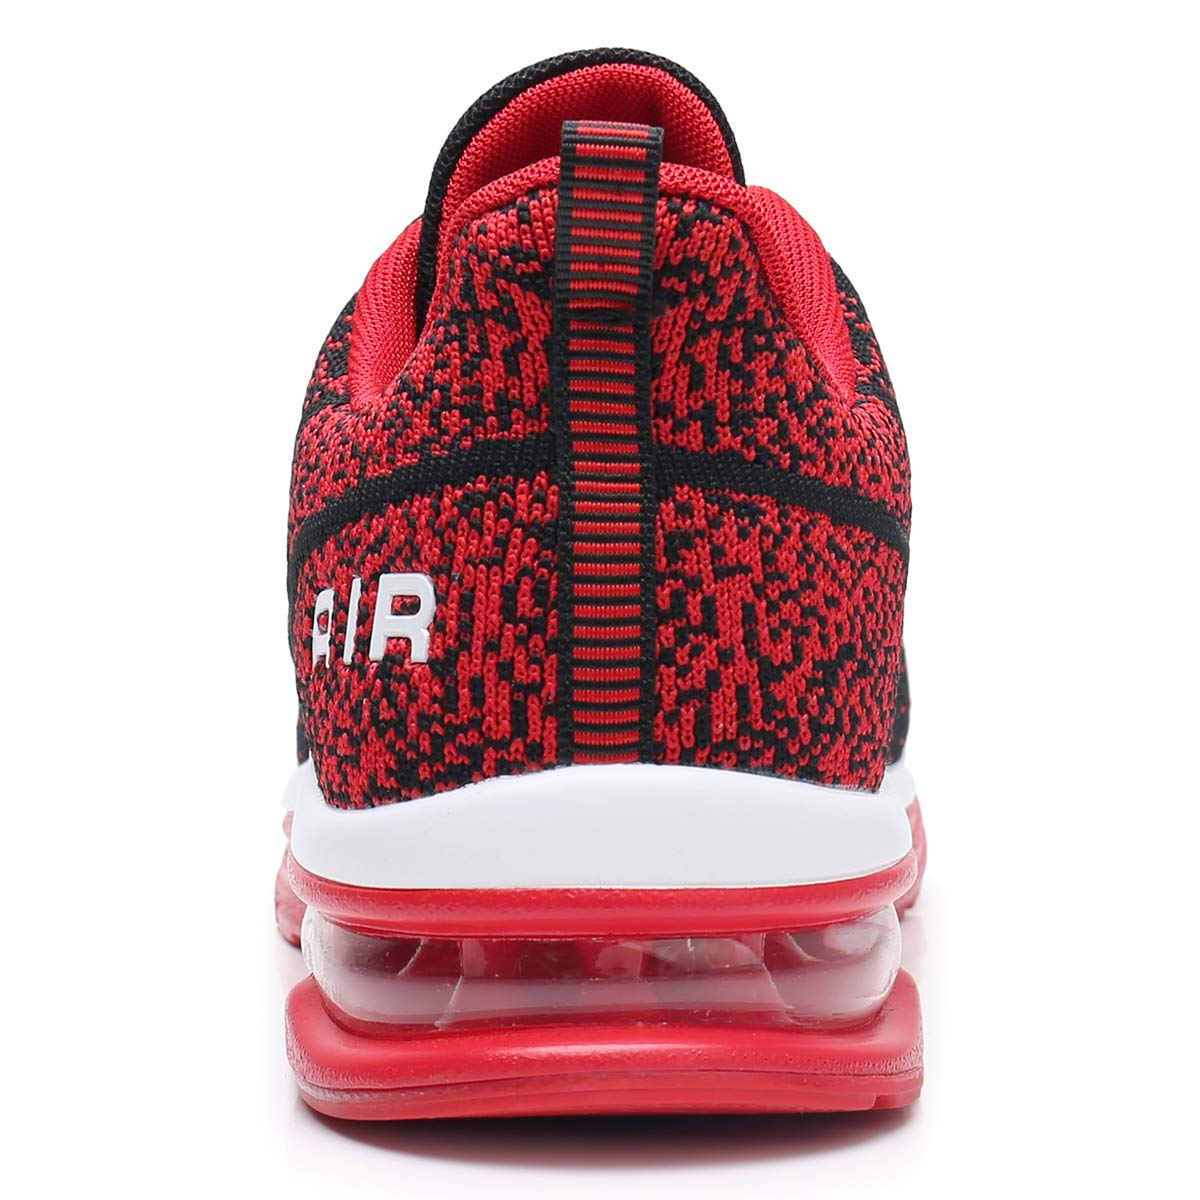 Impdoo Mens Air Athletic Running Sneaker Cute Fitness Sport Gym Jogging Tennis Shoes US7-12.5 D M